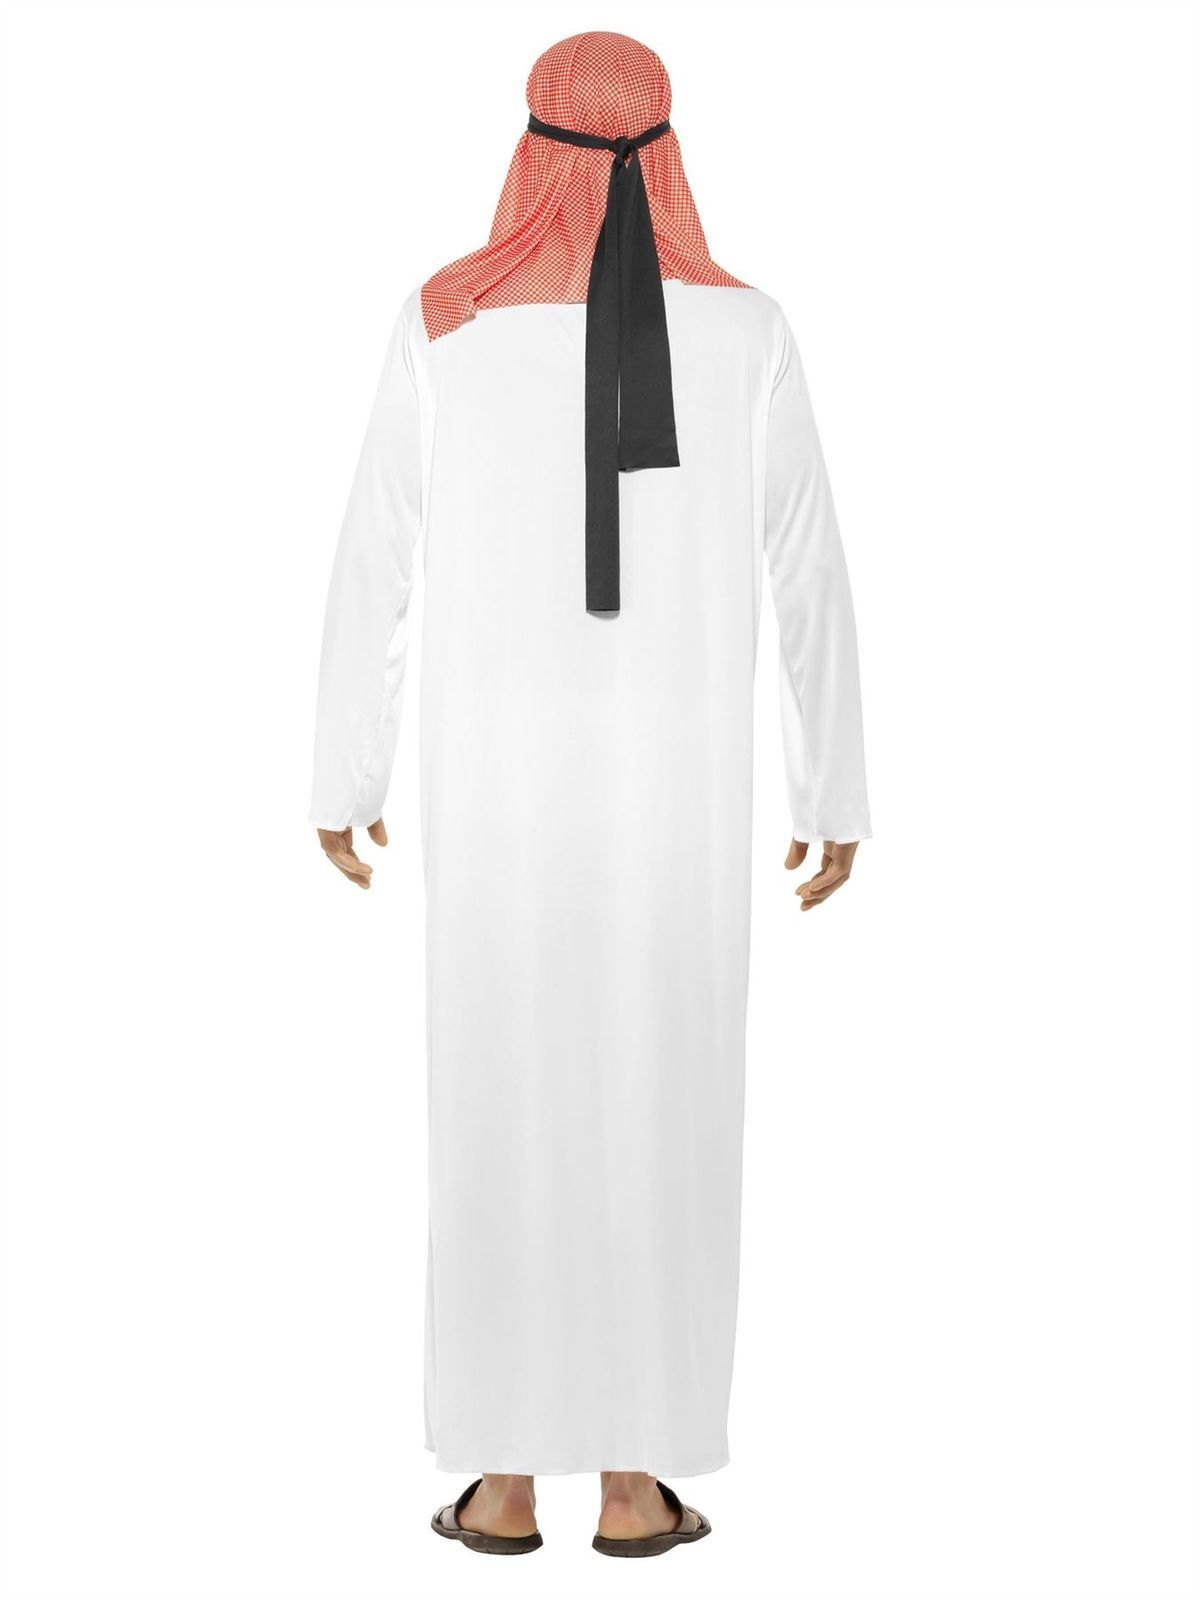 Mens Arab Sheikh Costume Sultan Prince Robe Fancy Dress Outfit